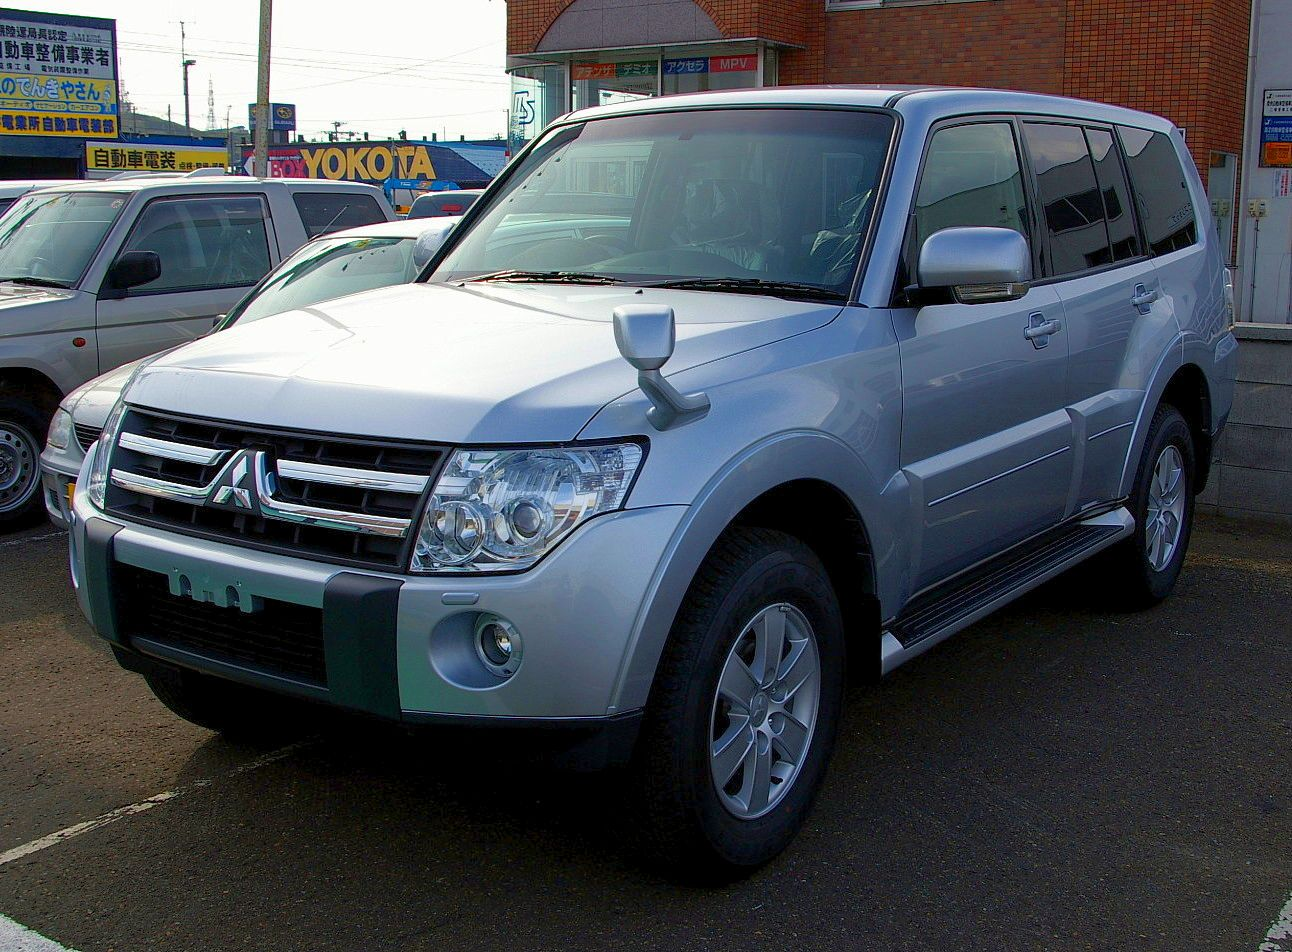 File:Mitsubishi Pajero 4th.JPG - Wikipedia, the free encyclopedia